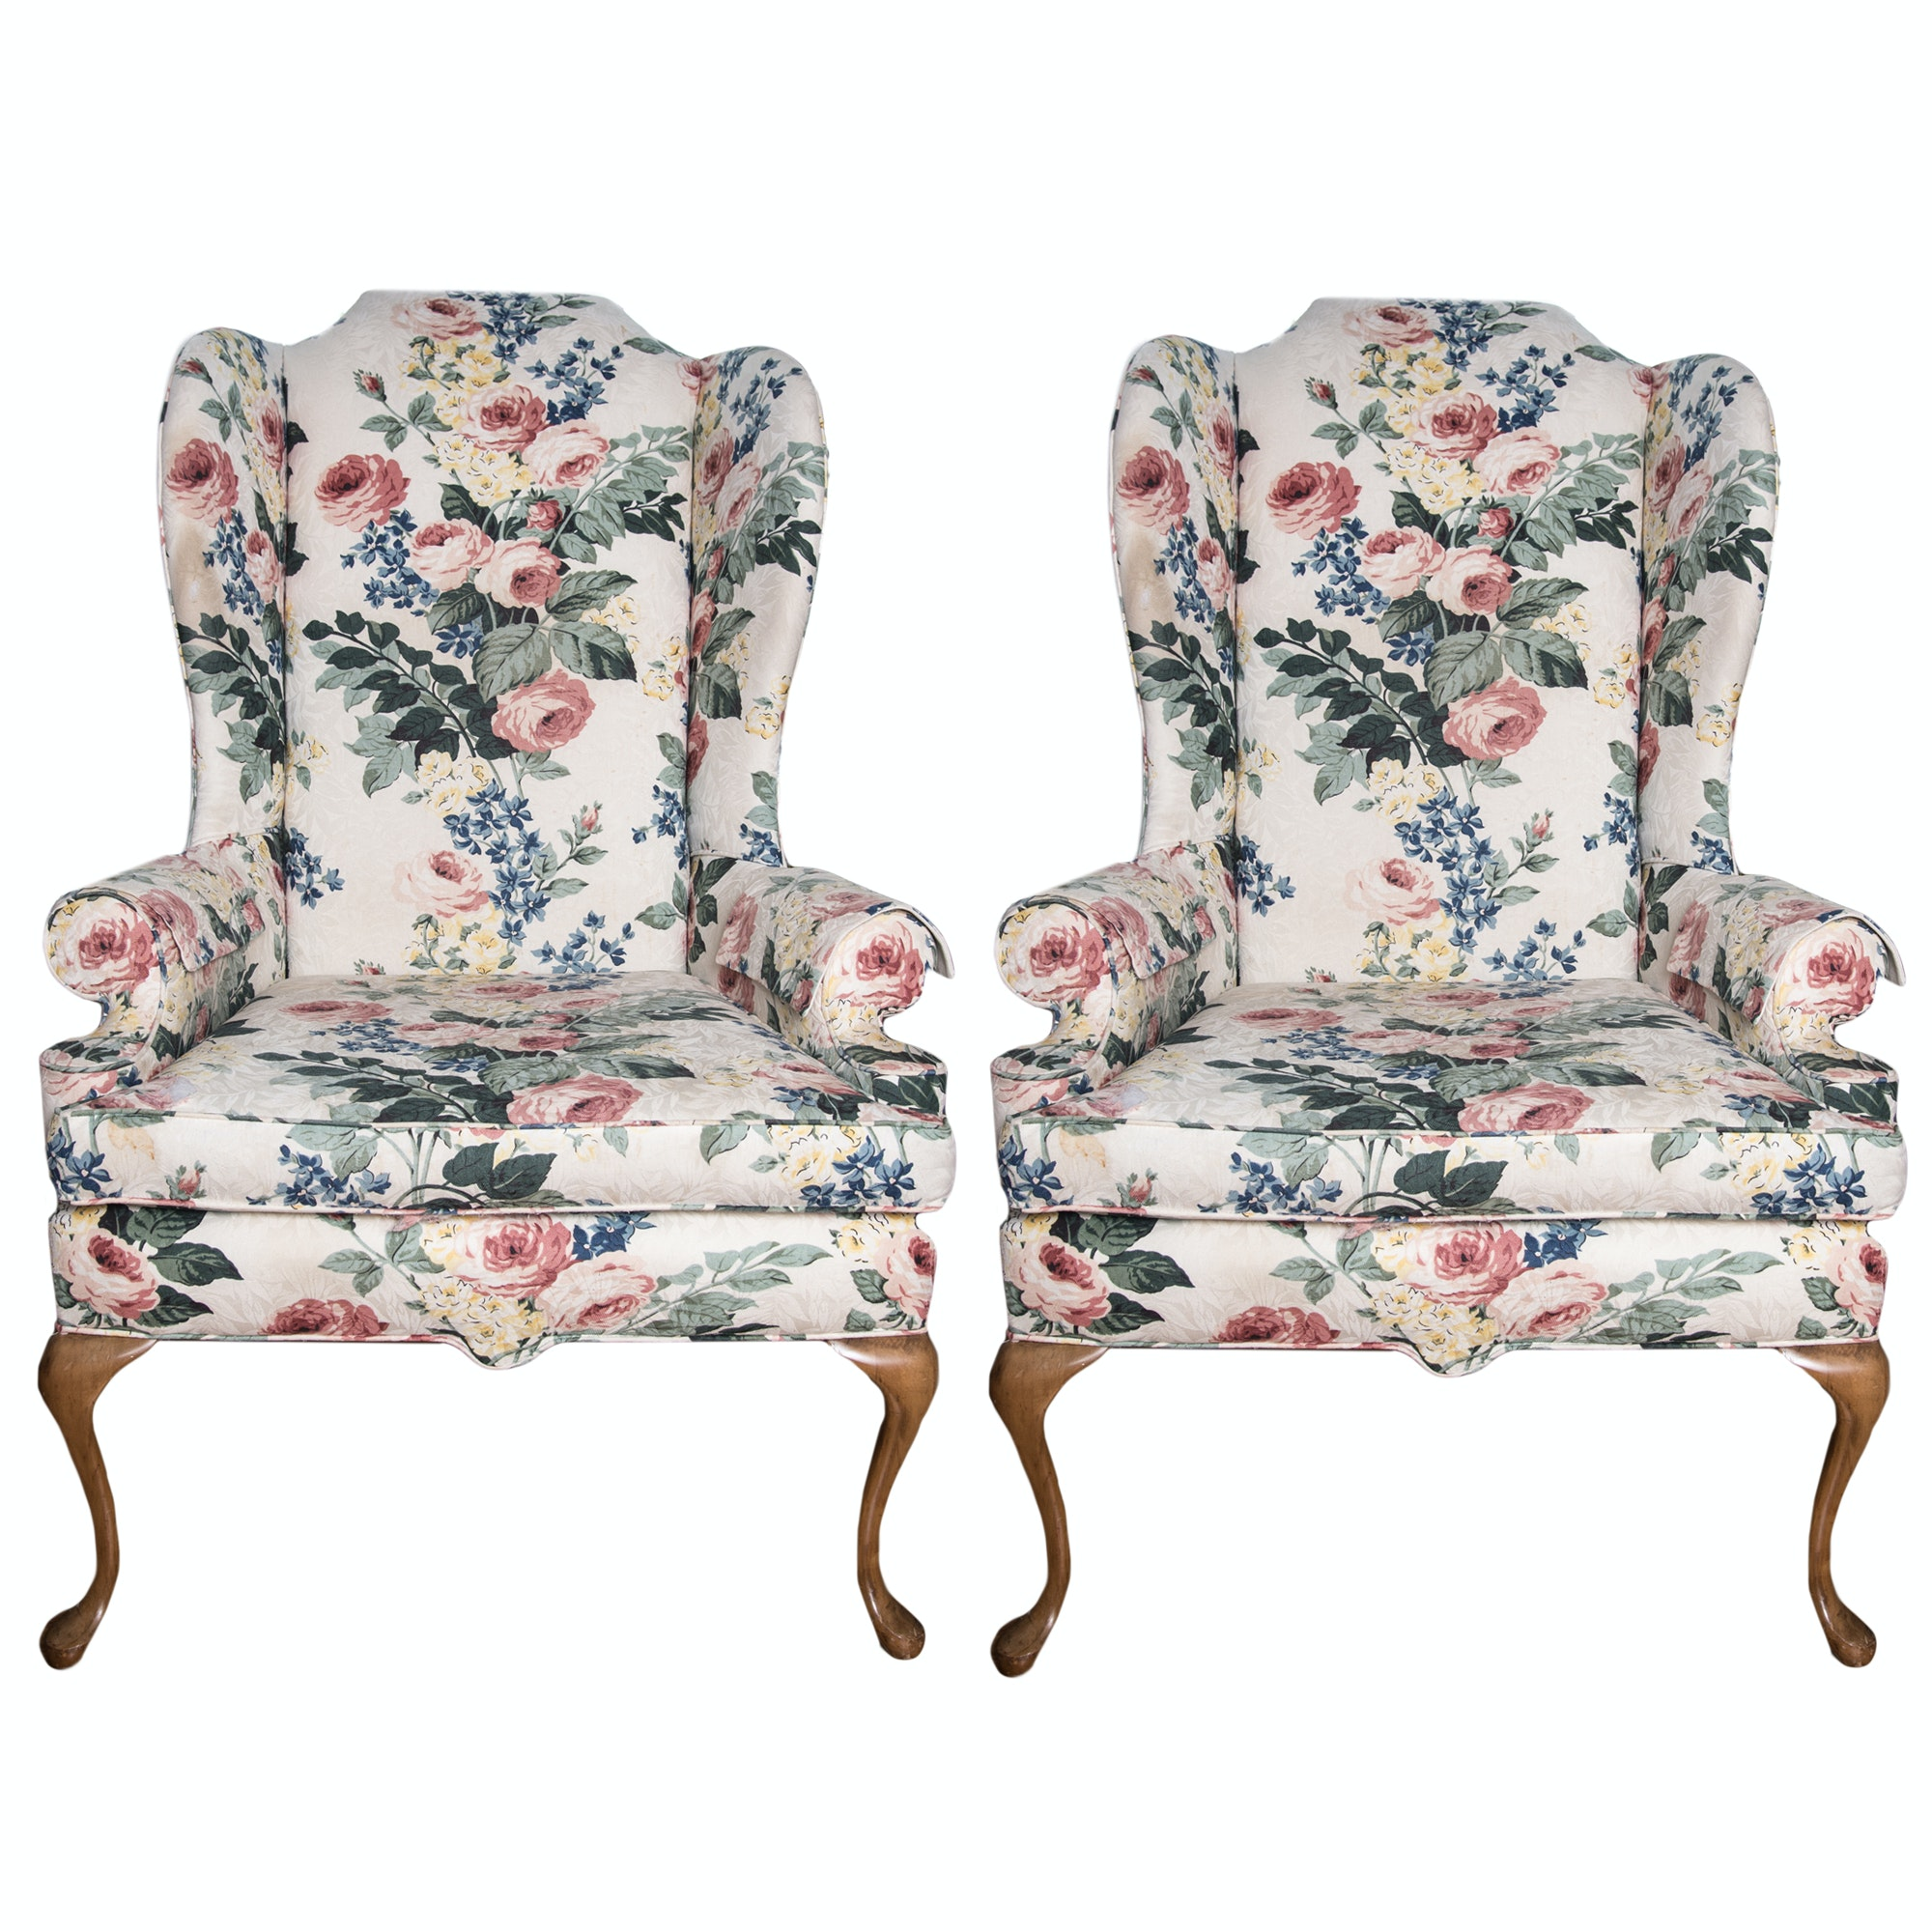 Floral Upholstered Wing Back Chairs